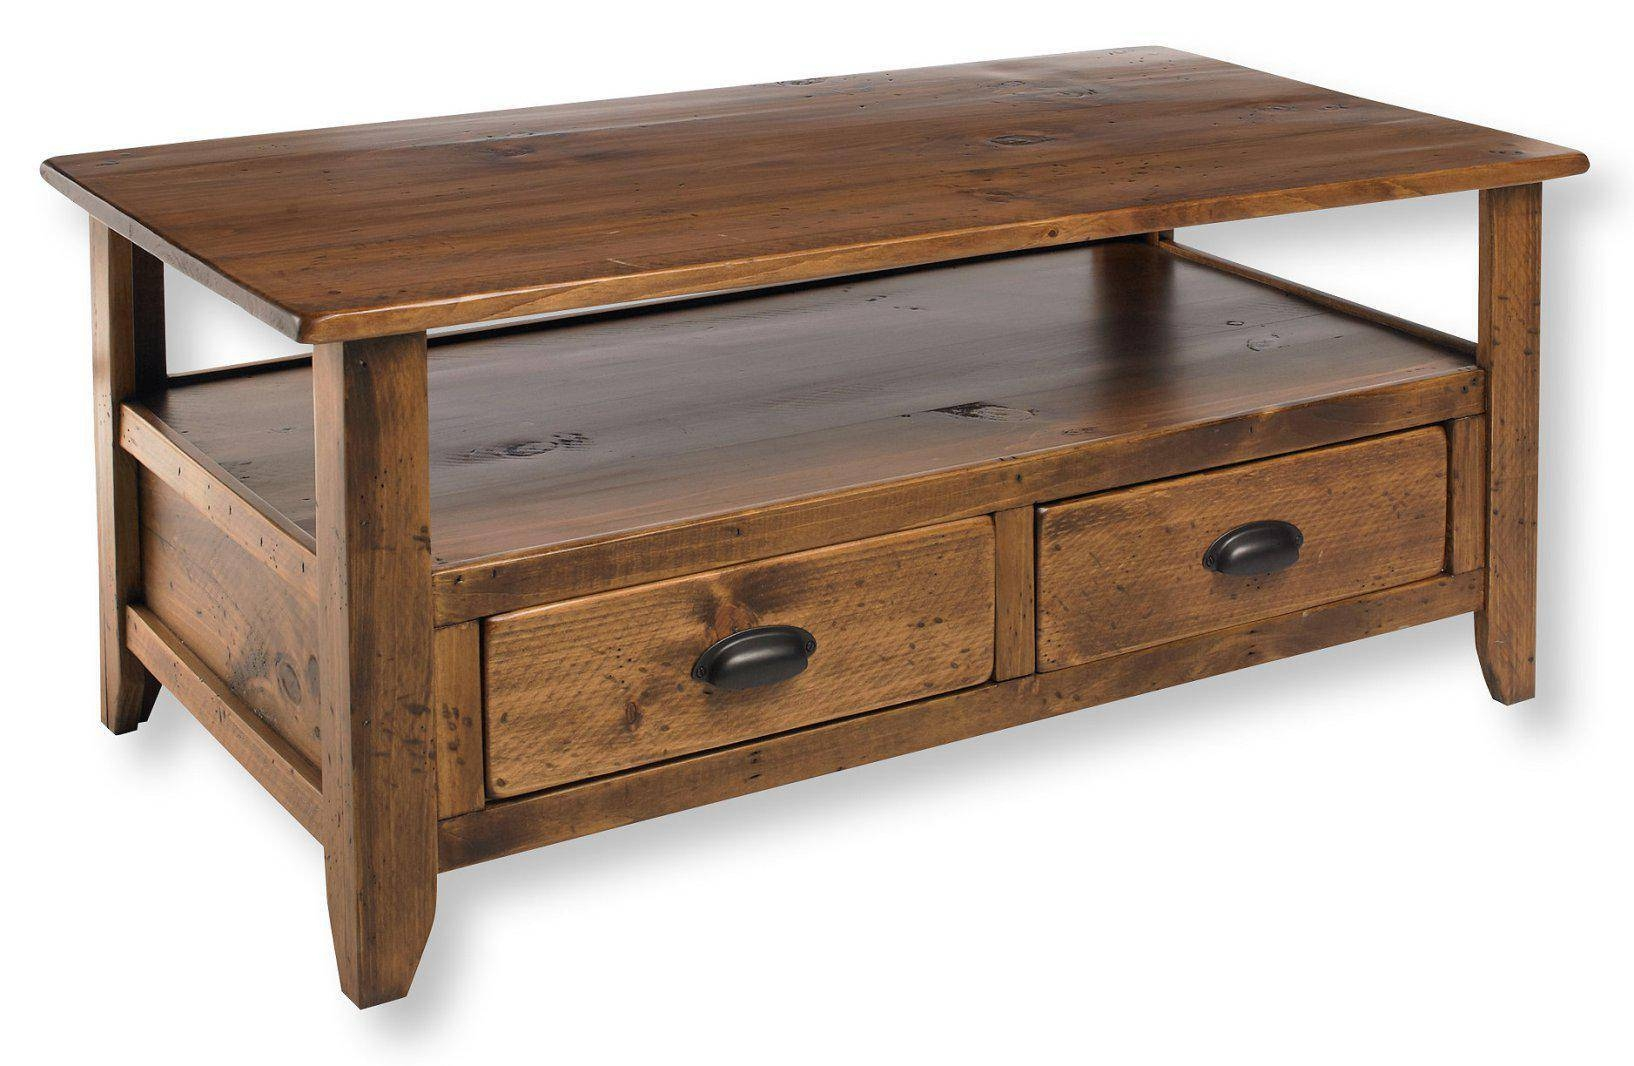 Wood Coffee Table With Storage | Coffee Tables Decoration regarding Hardwood Coffee Tables With Storage (Image 29 of 30)